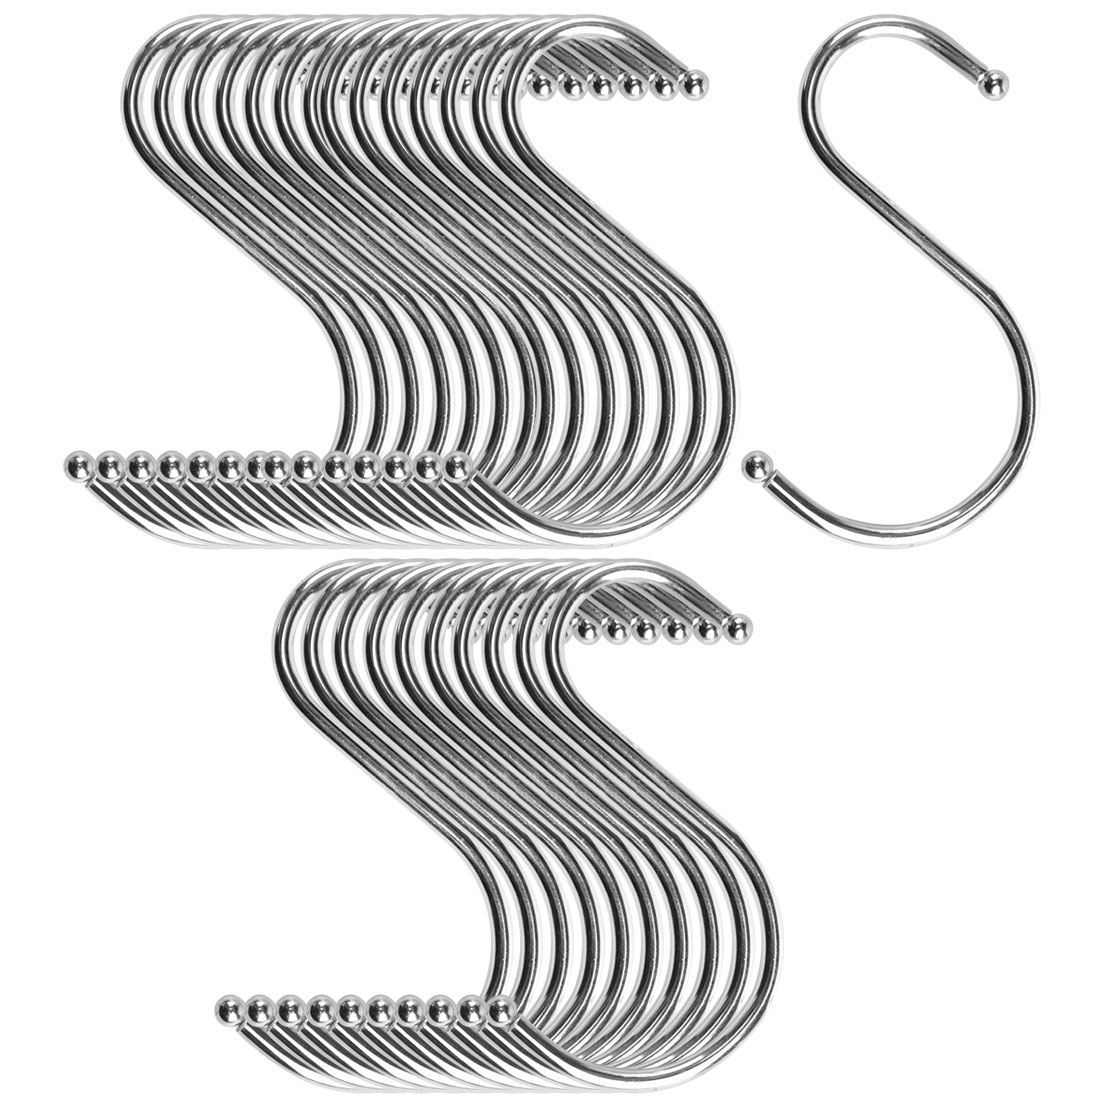 S Shape Hook Rack Stainless Steel for Kitchenware Coat Towel Holder 30 Pack